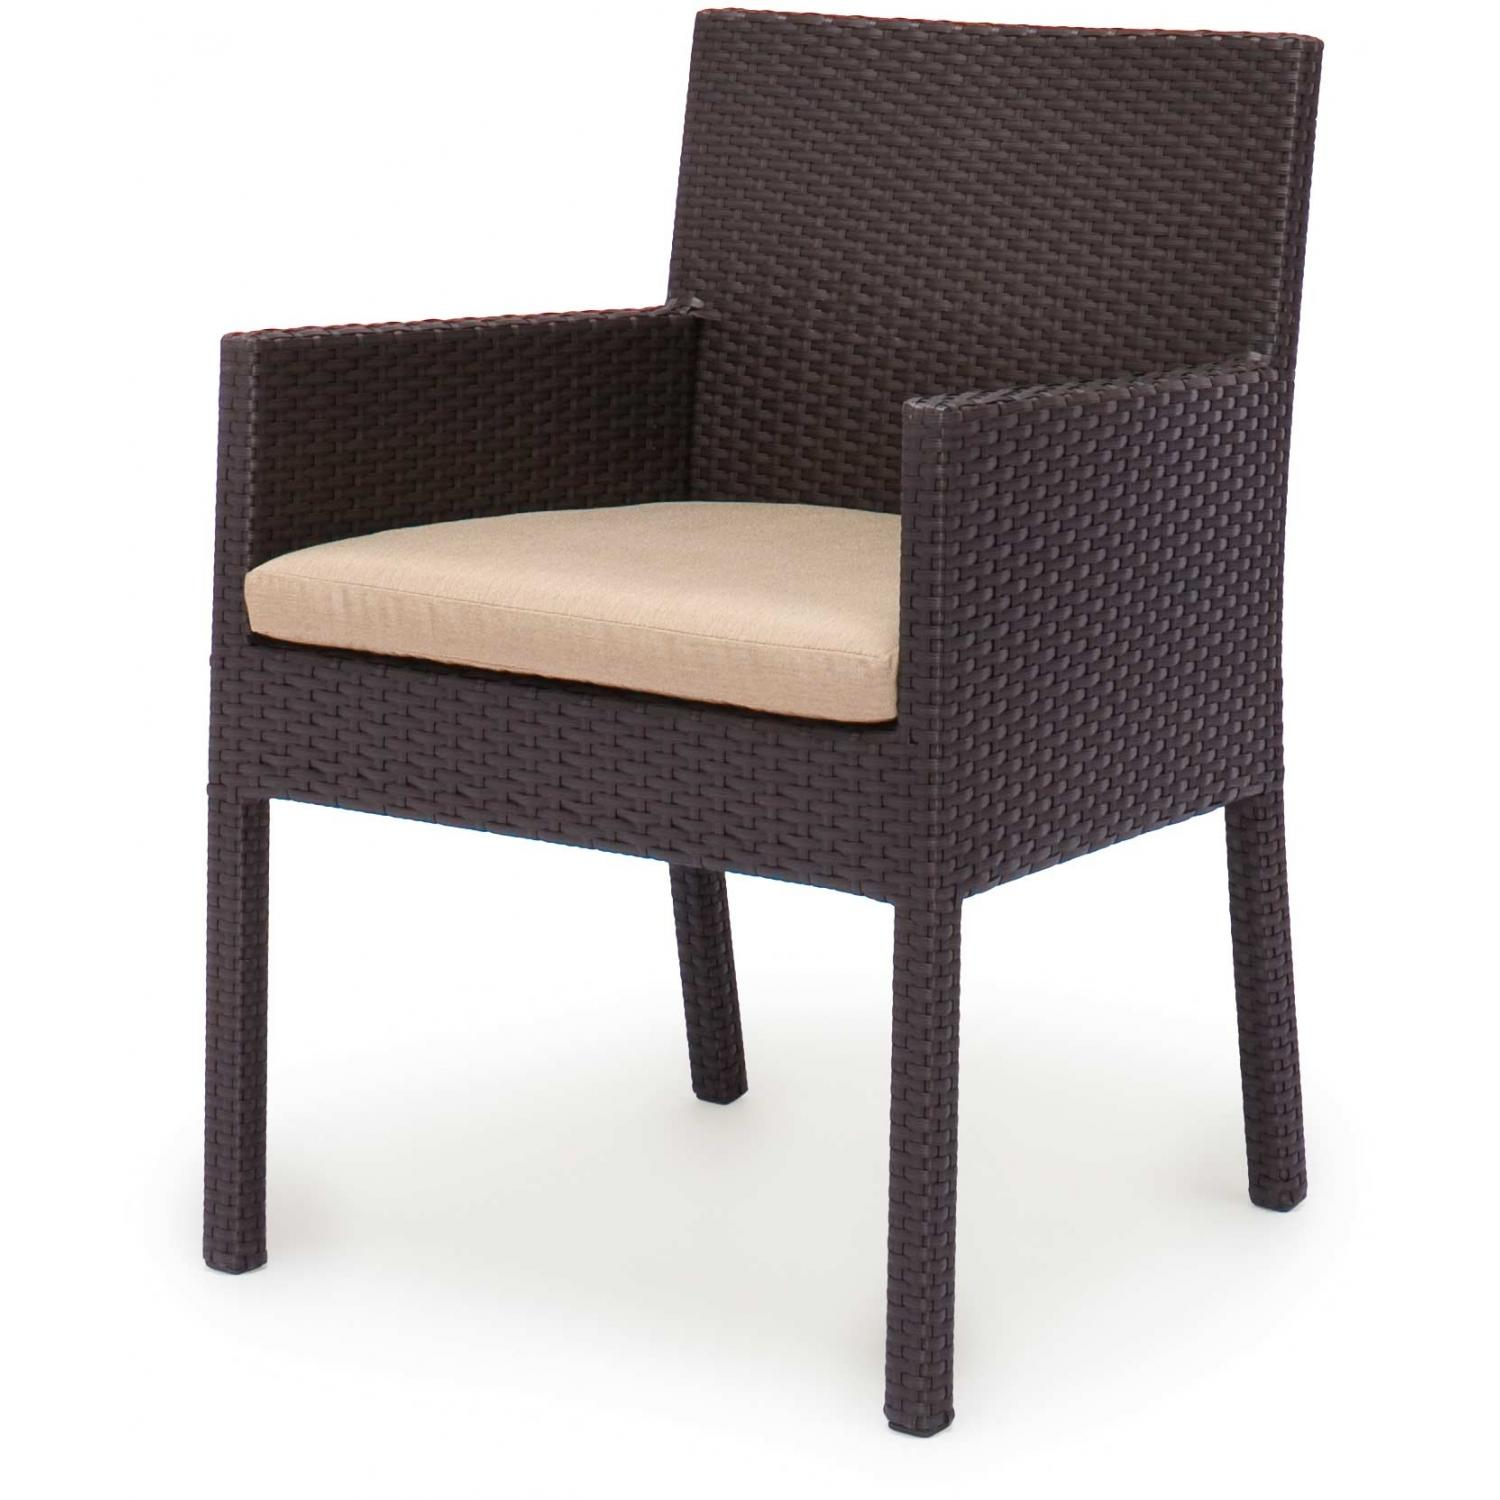 Caluco Maxime Wicker Dining Arm Chair